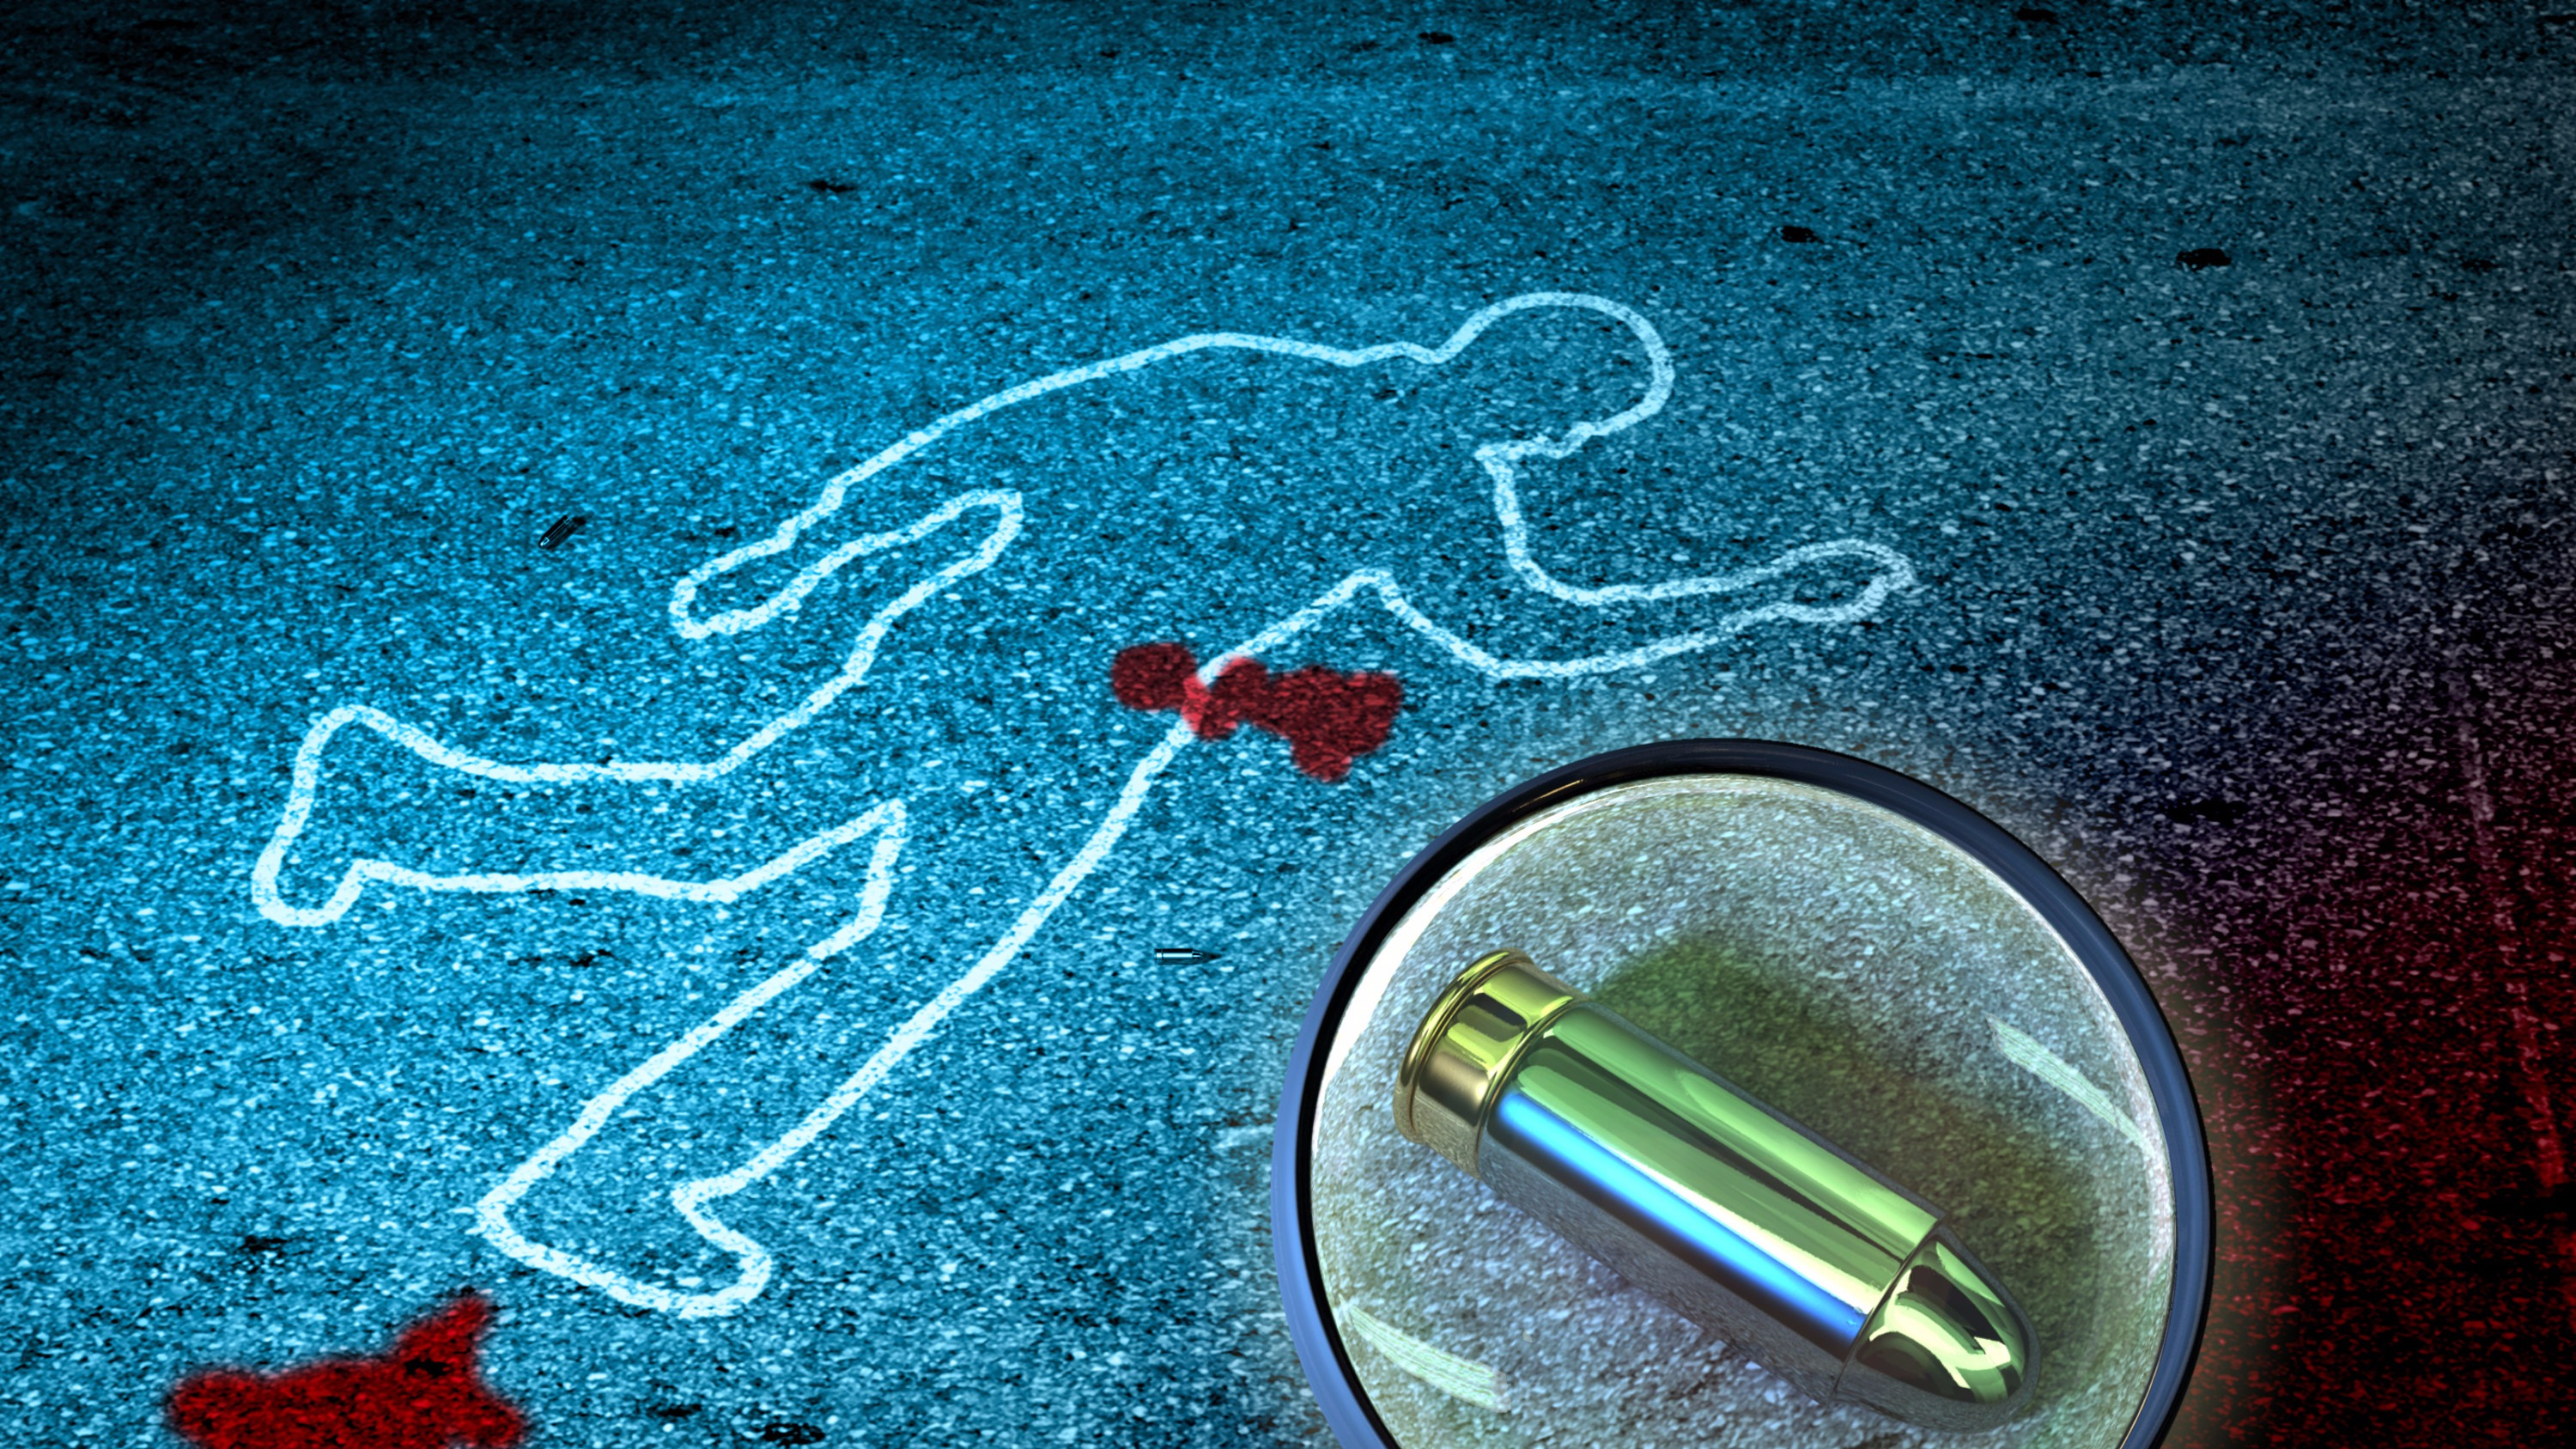 Crime scene chalk outline